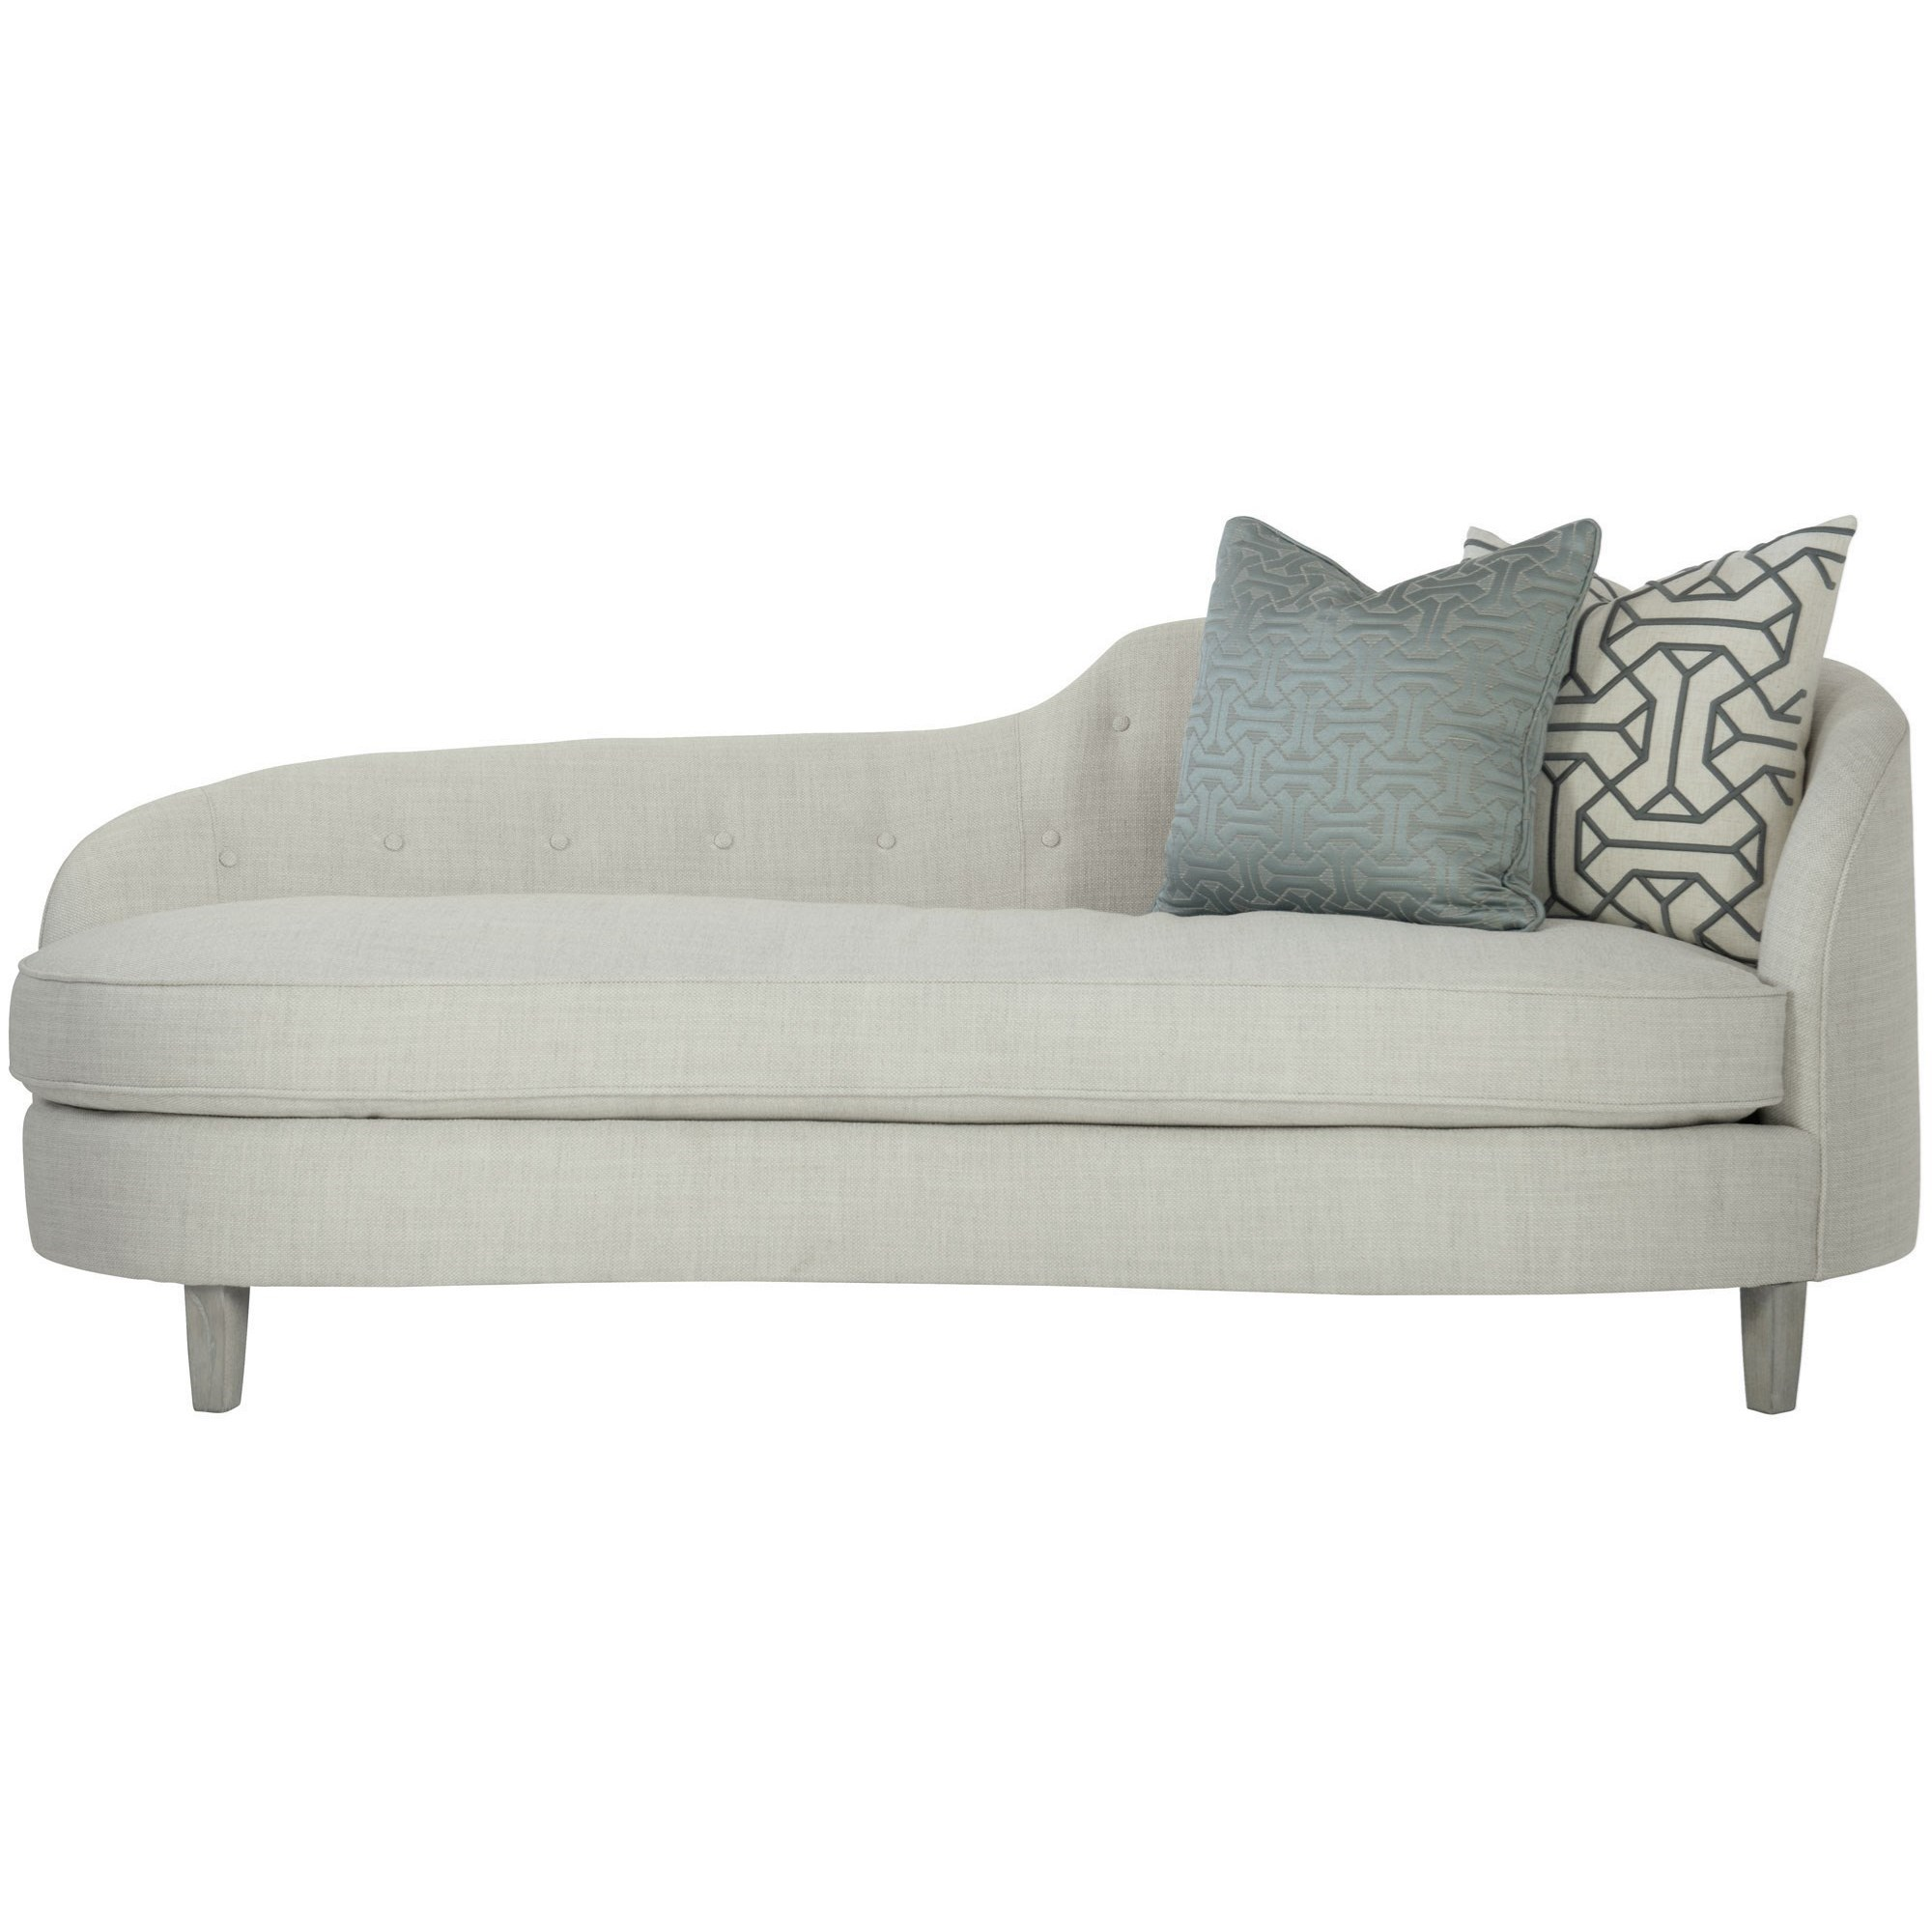 Lorient Right Arm Chaise With On